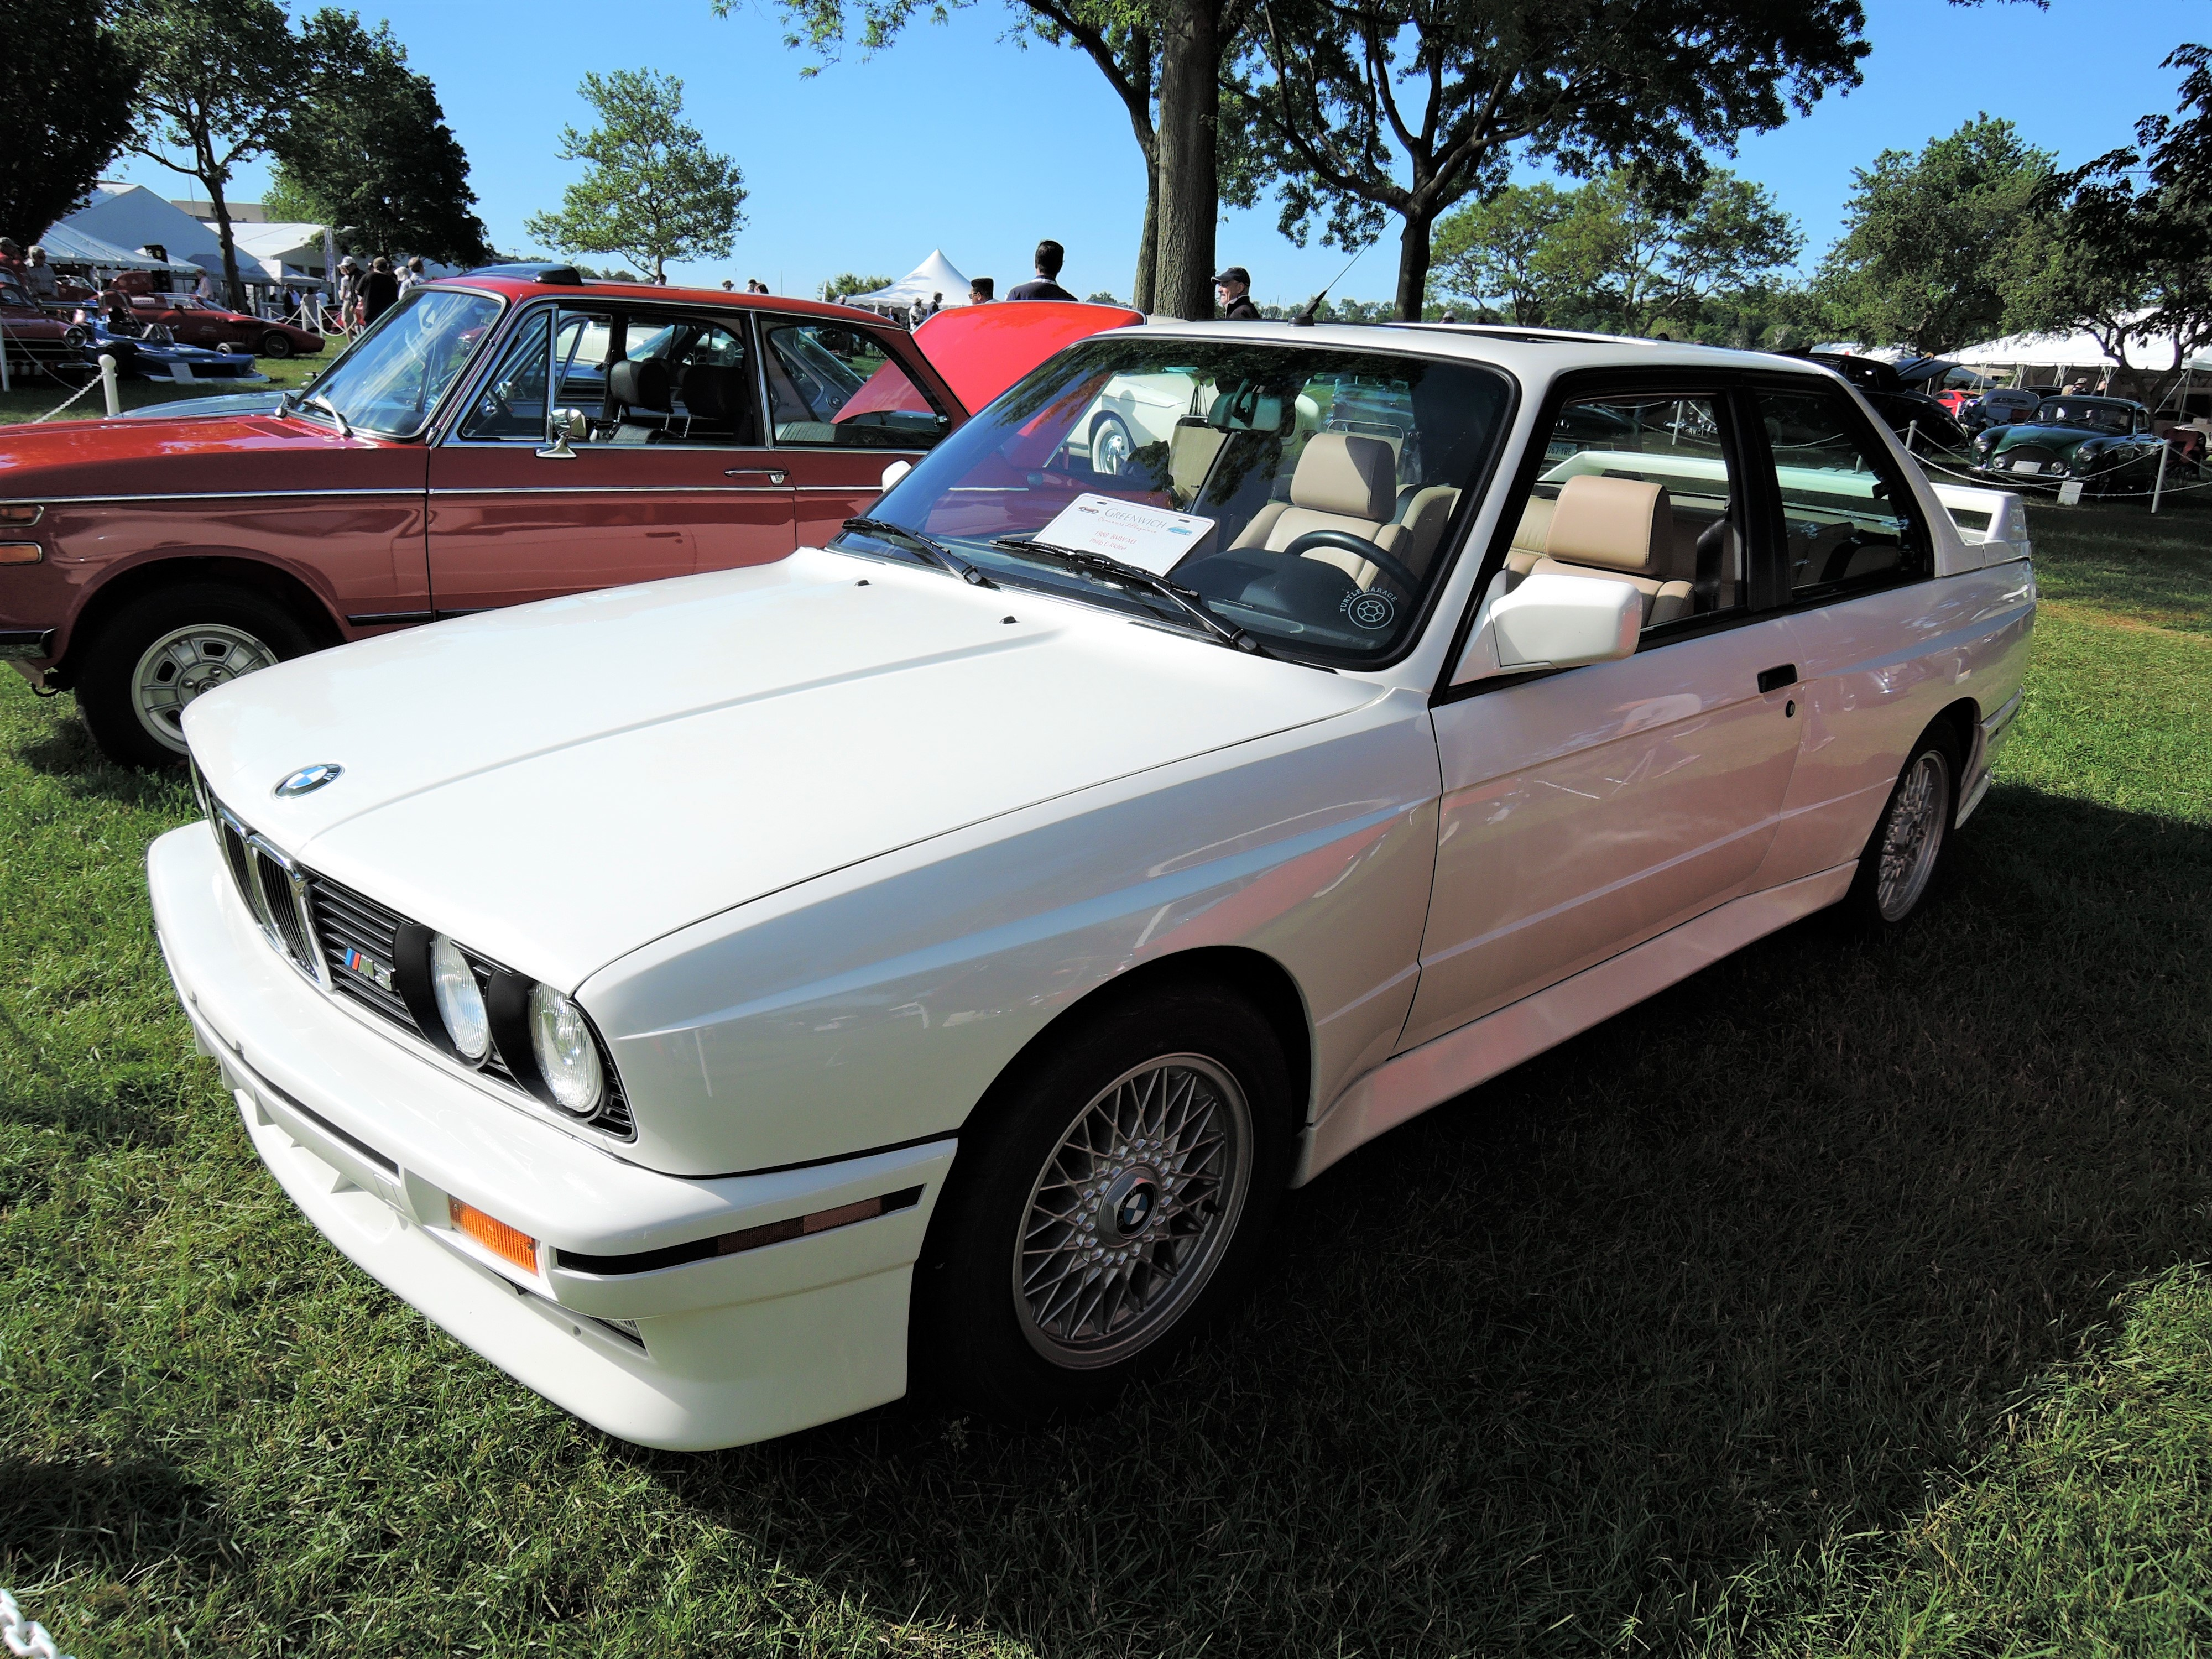 white 1988 BMW M3 - Greenwich Concours d'Elegance 2017